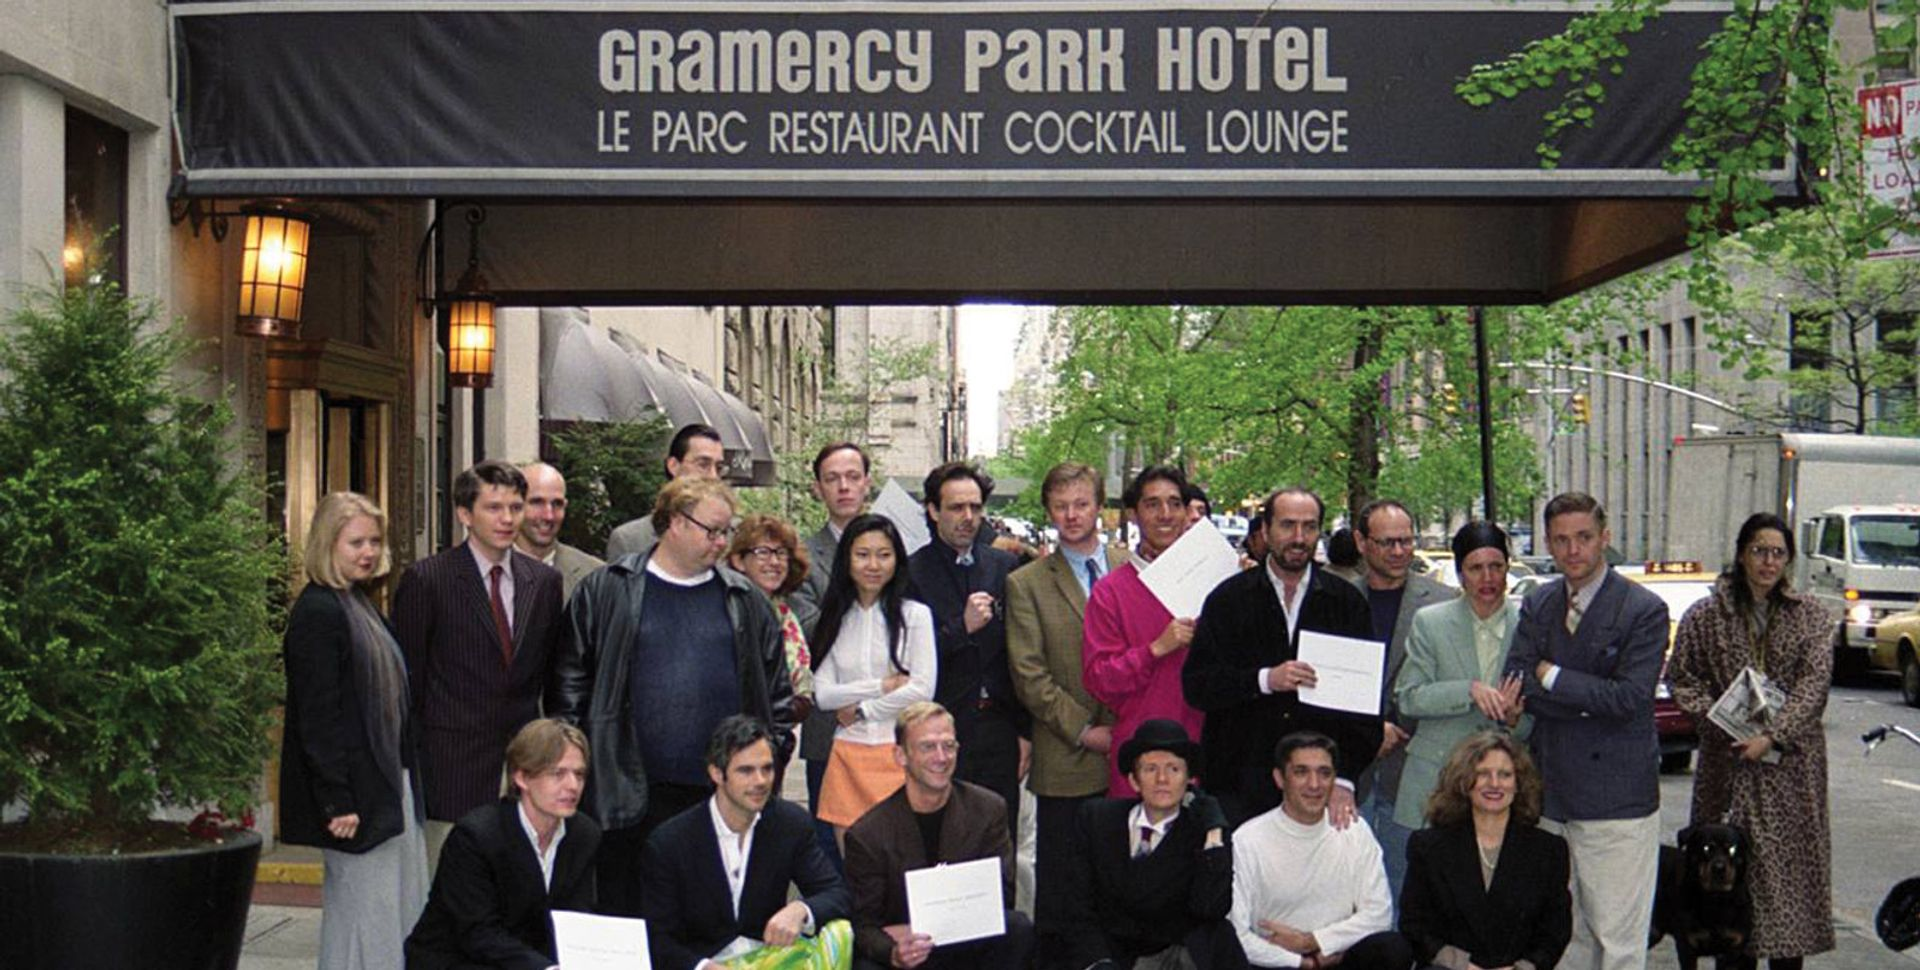 'Class of 1996' dealers in front of the Gramercy Park Hotel in 1996 Photo: © Sylvie Ball